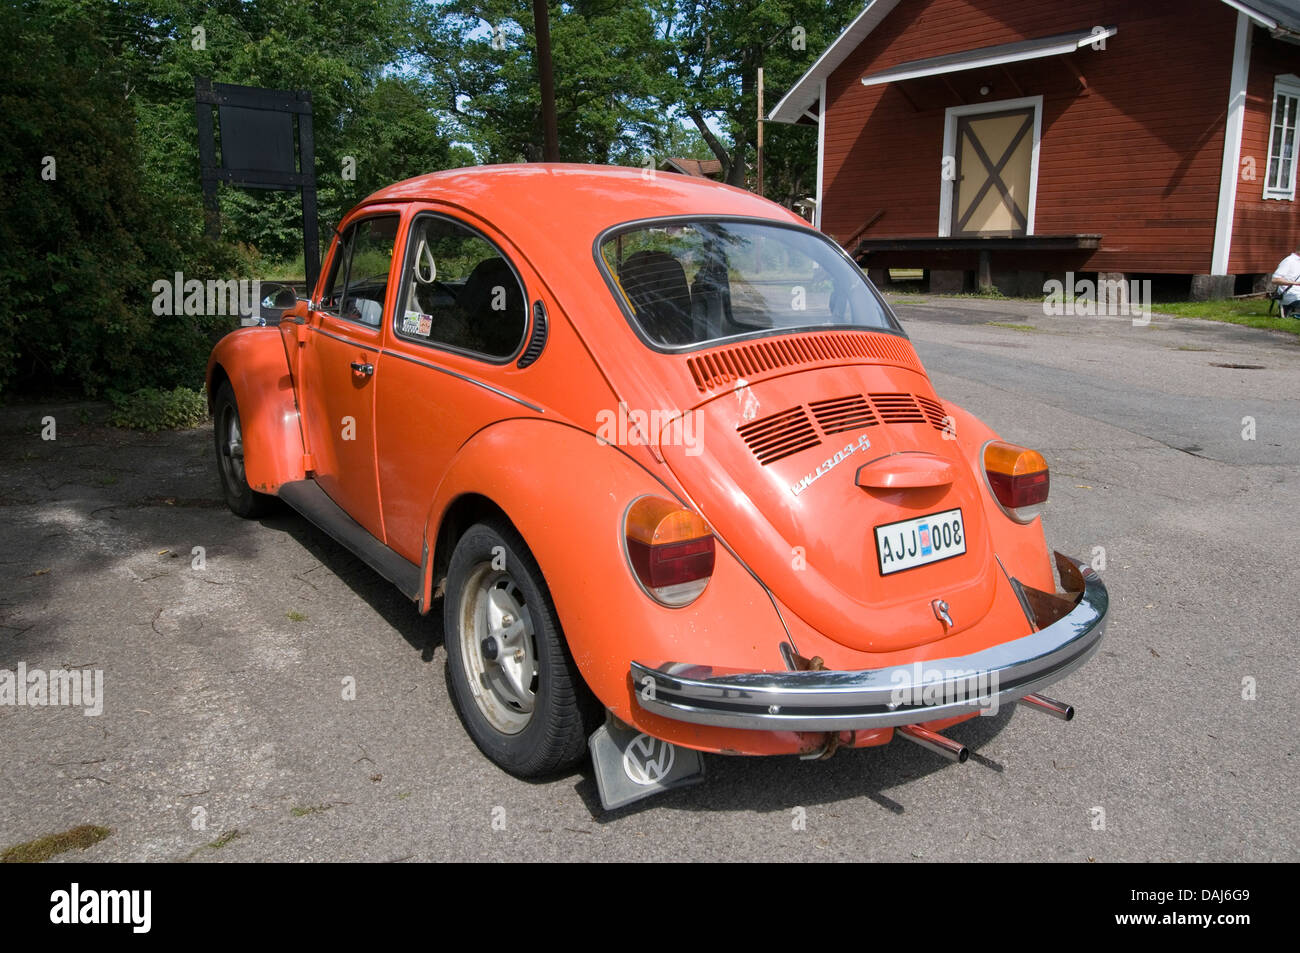 volkswagen VW beetle super superbeetle late model 1303 bug aircooled engine